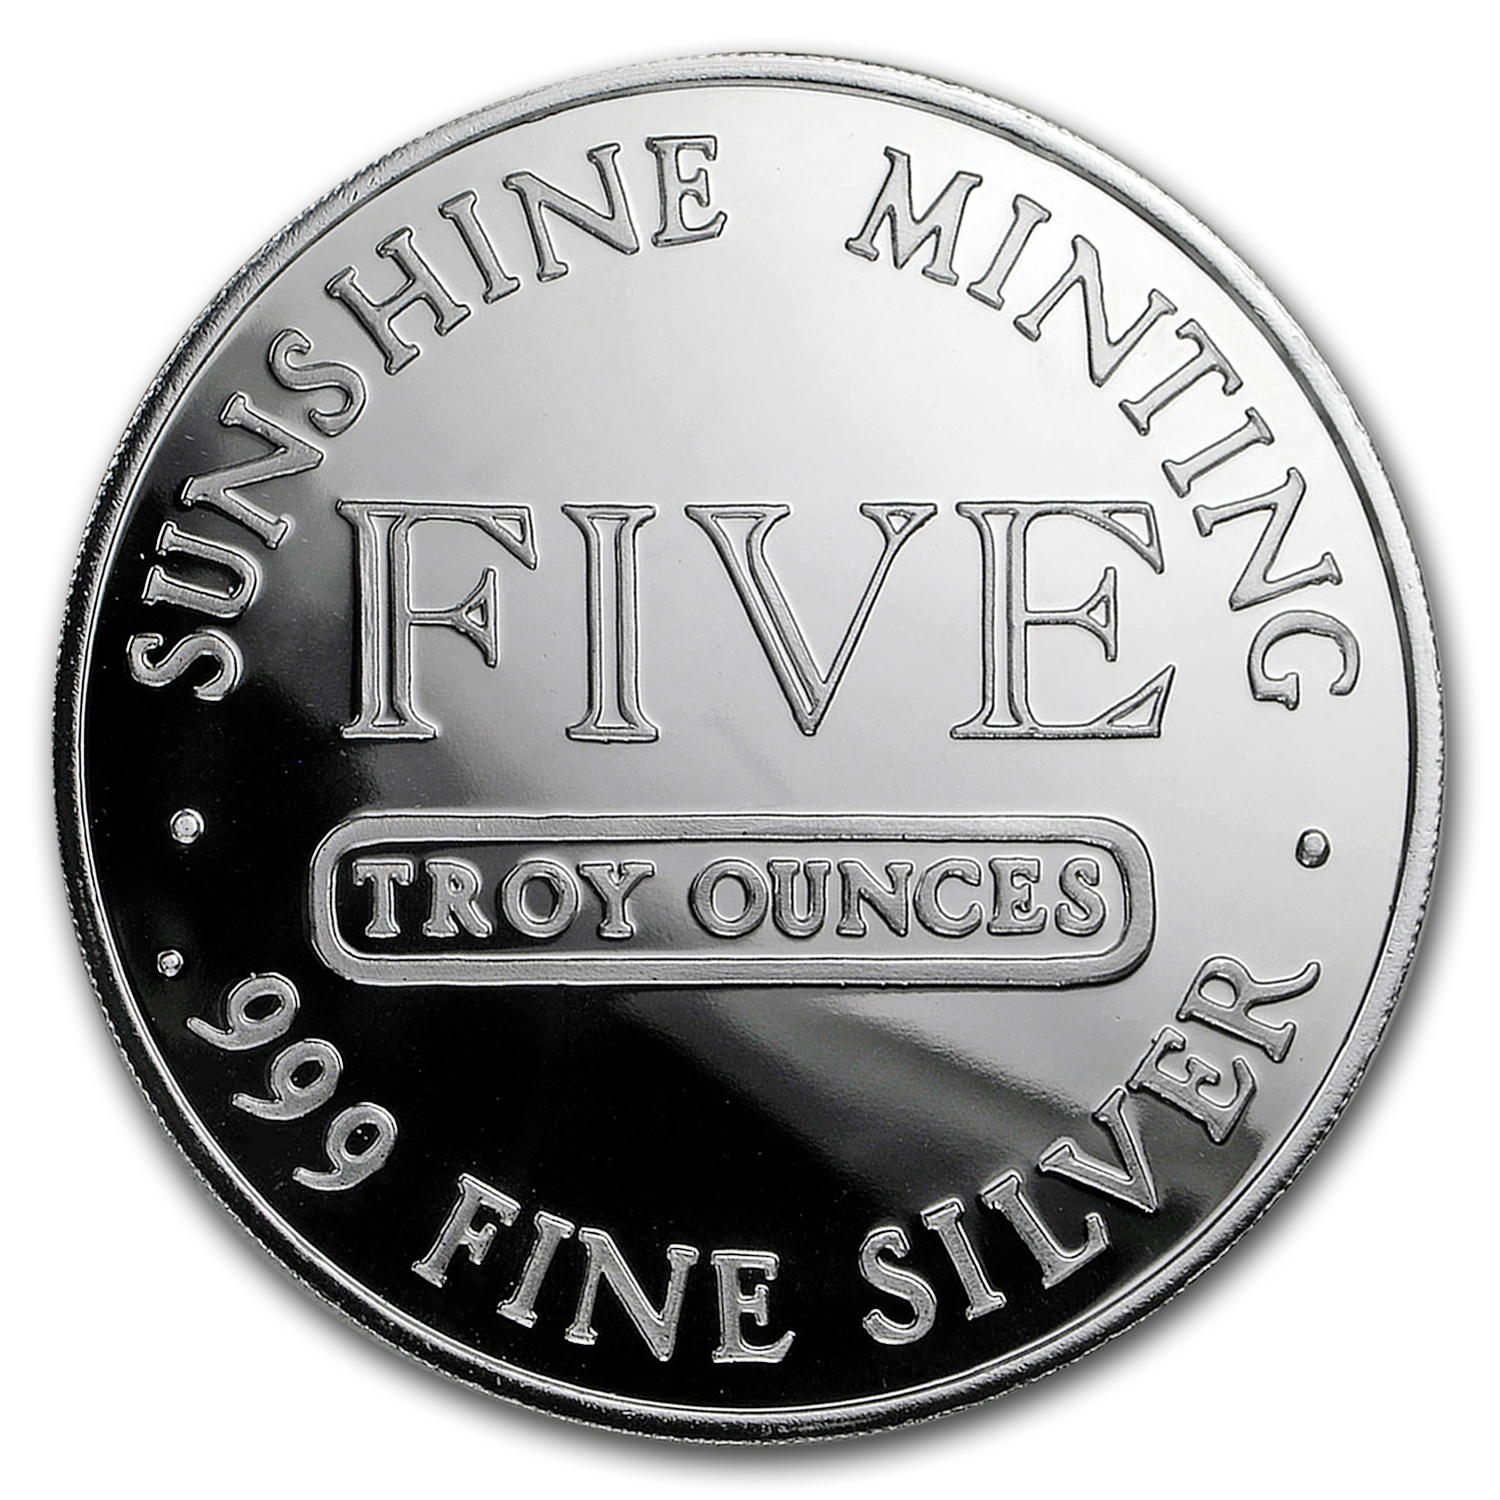 5 oz Silver Rounds - Sunshine Mint (Vintage Design)